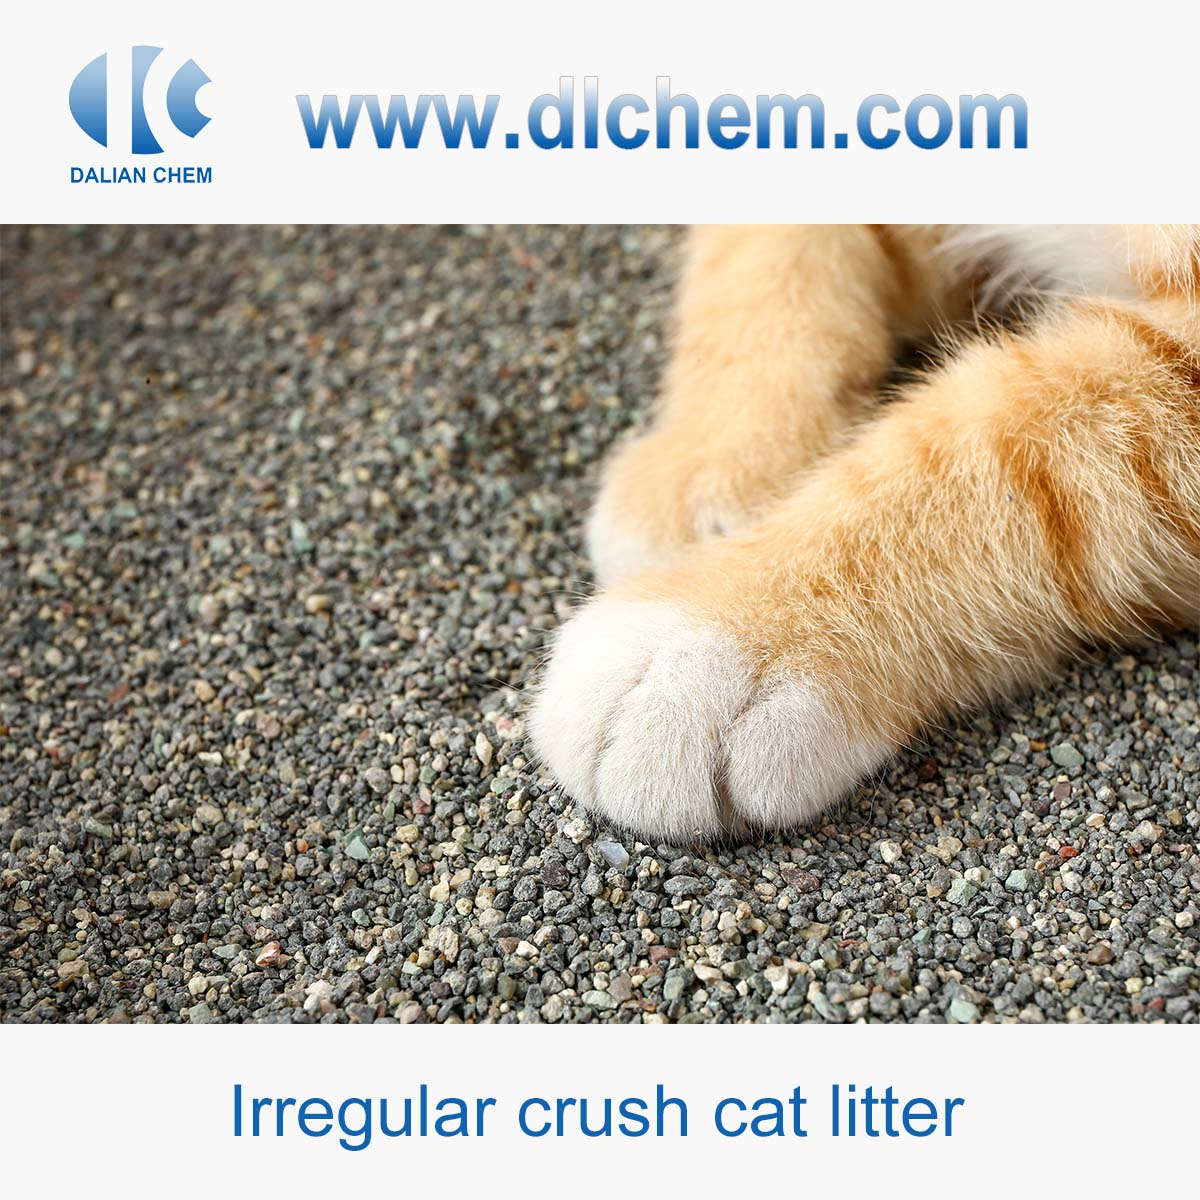 Environment friendly Irregular crush cat litter with low cost